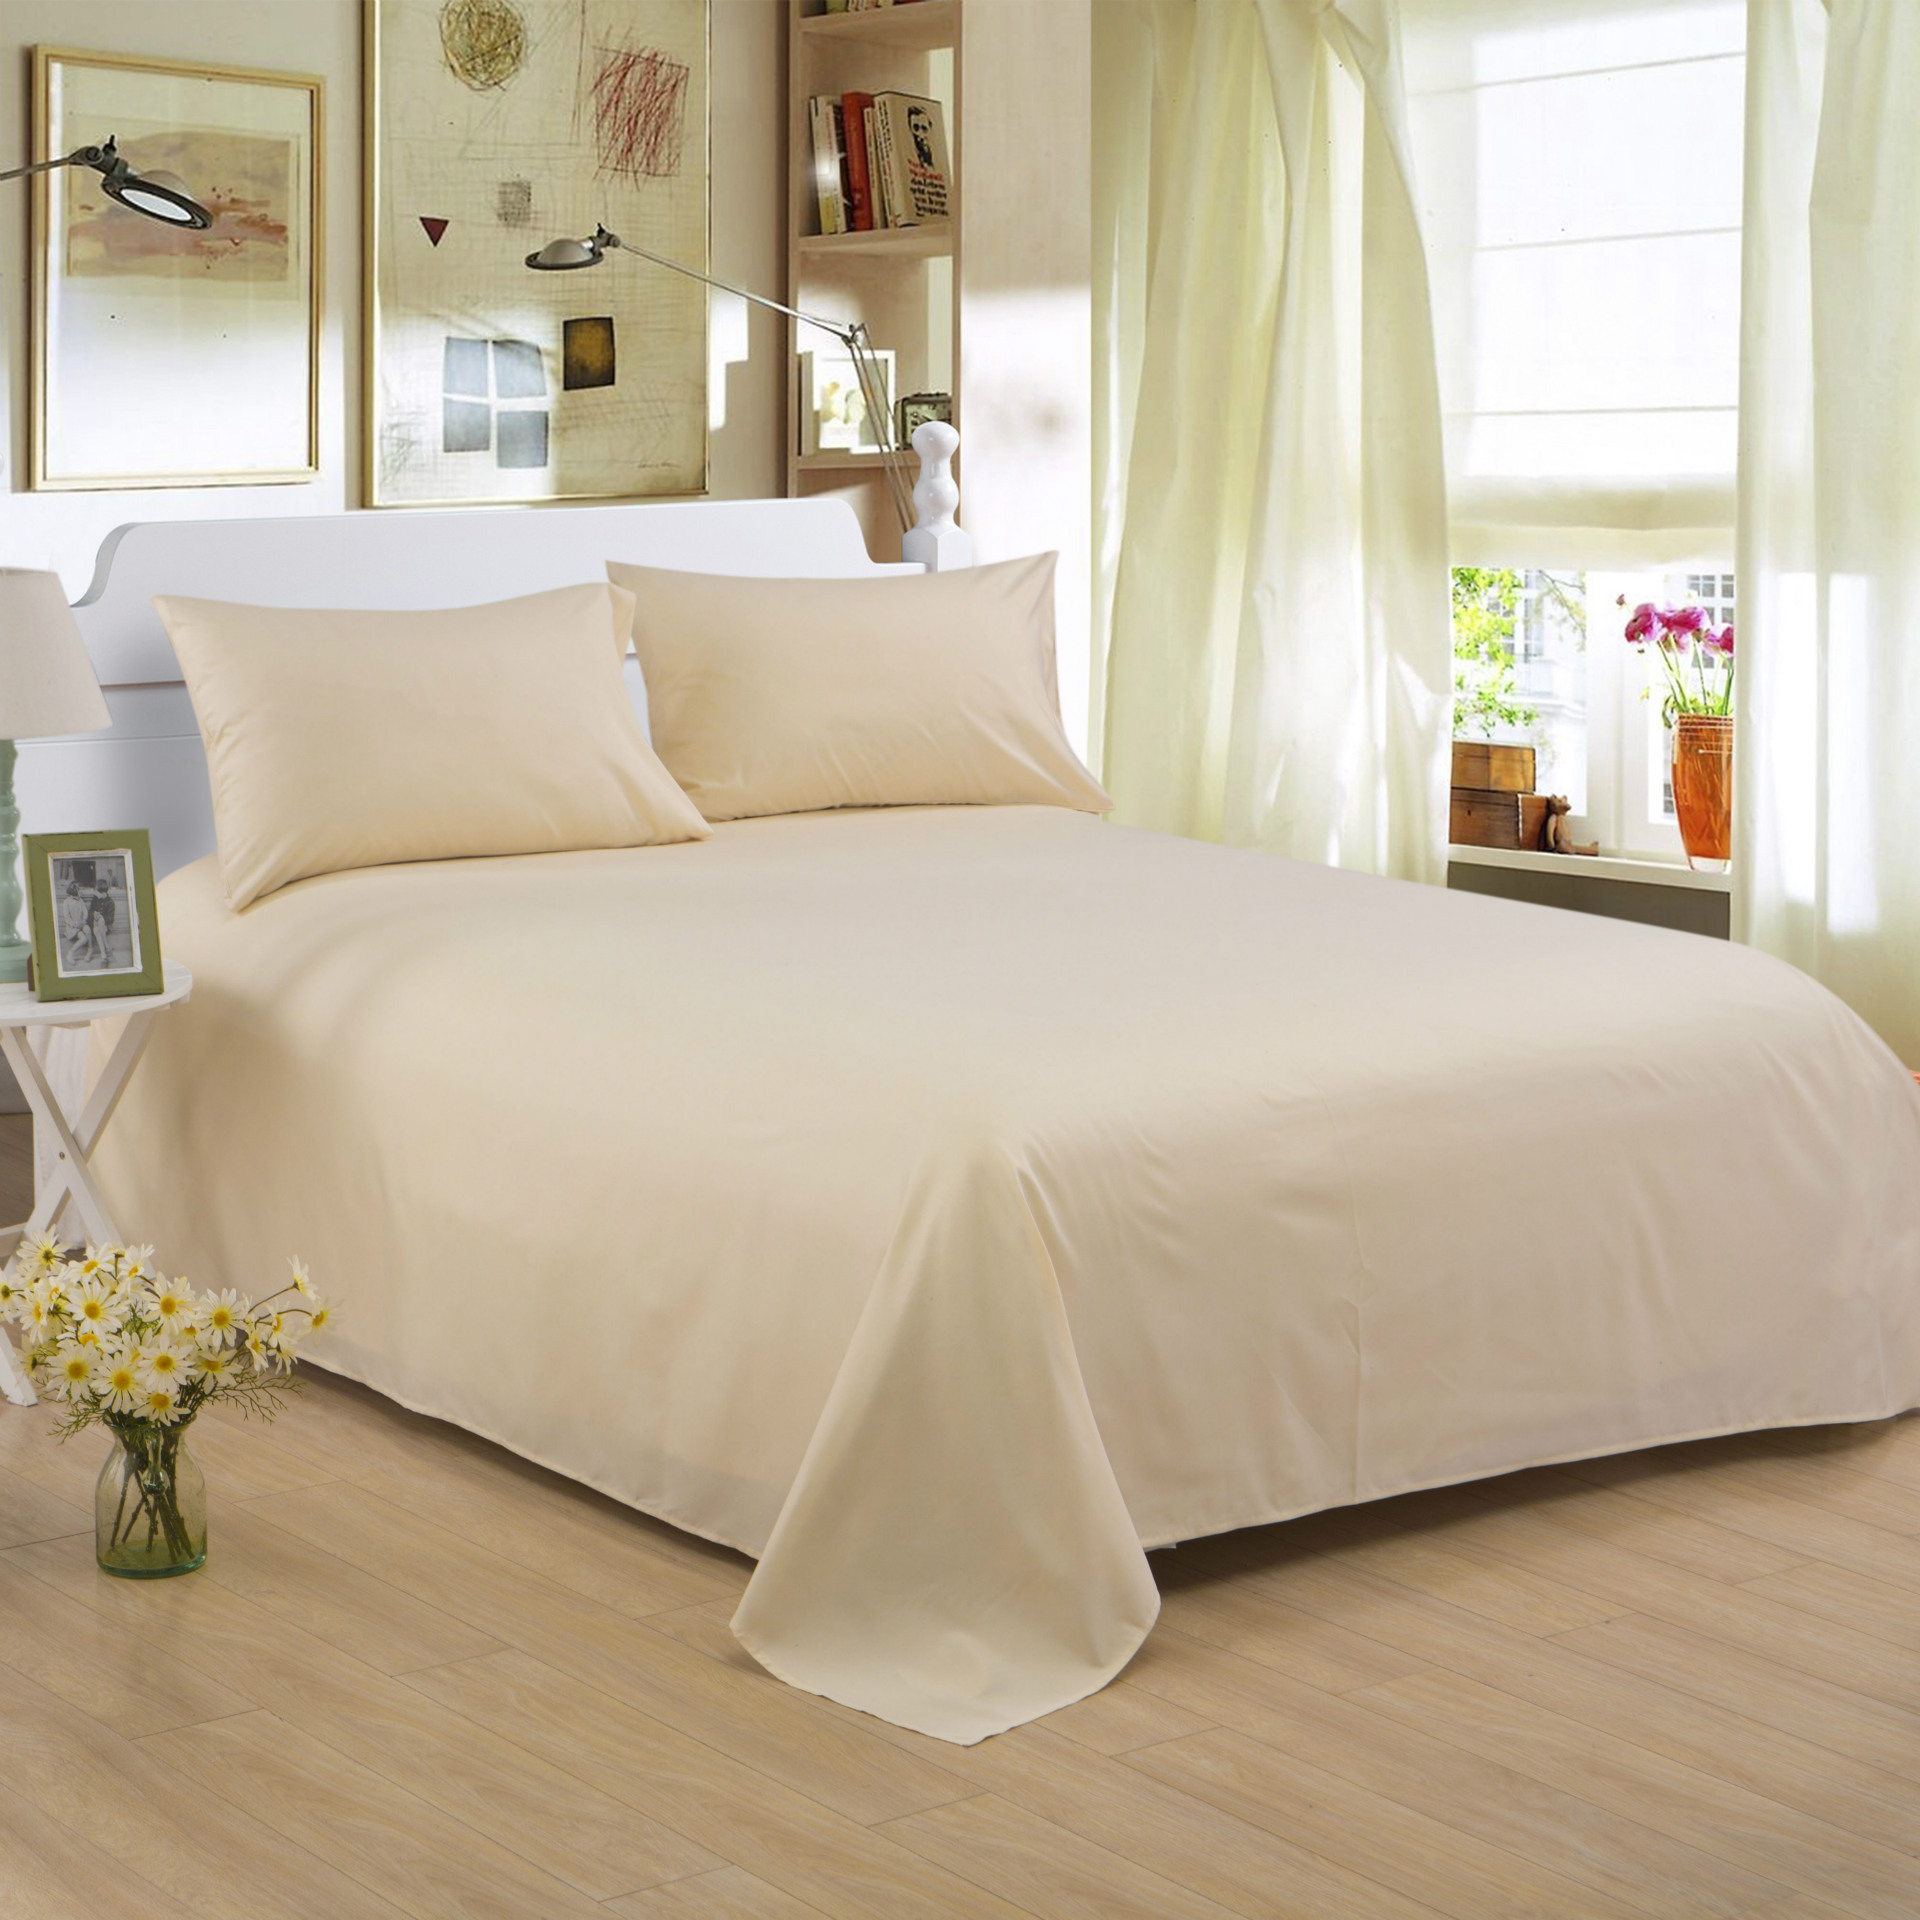 ropa de cama Solid color polyester cotton bed sheet hotel home soft brushed flat sheet queen bed cover not included pillowcase 7